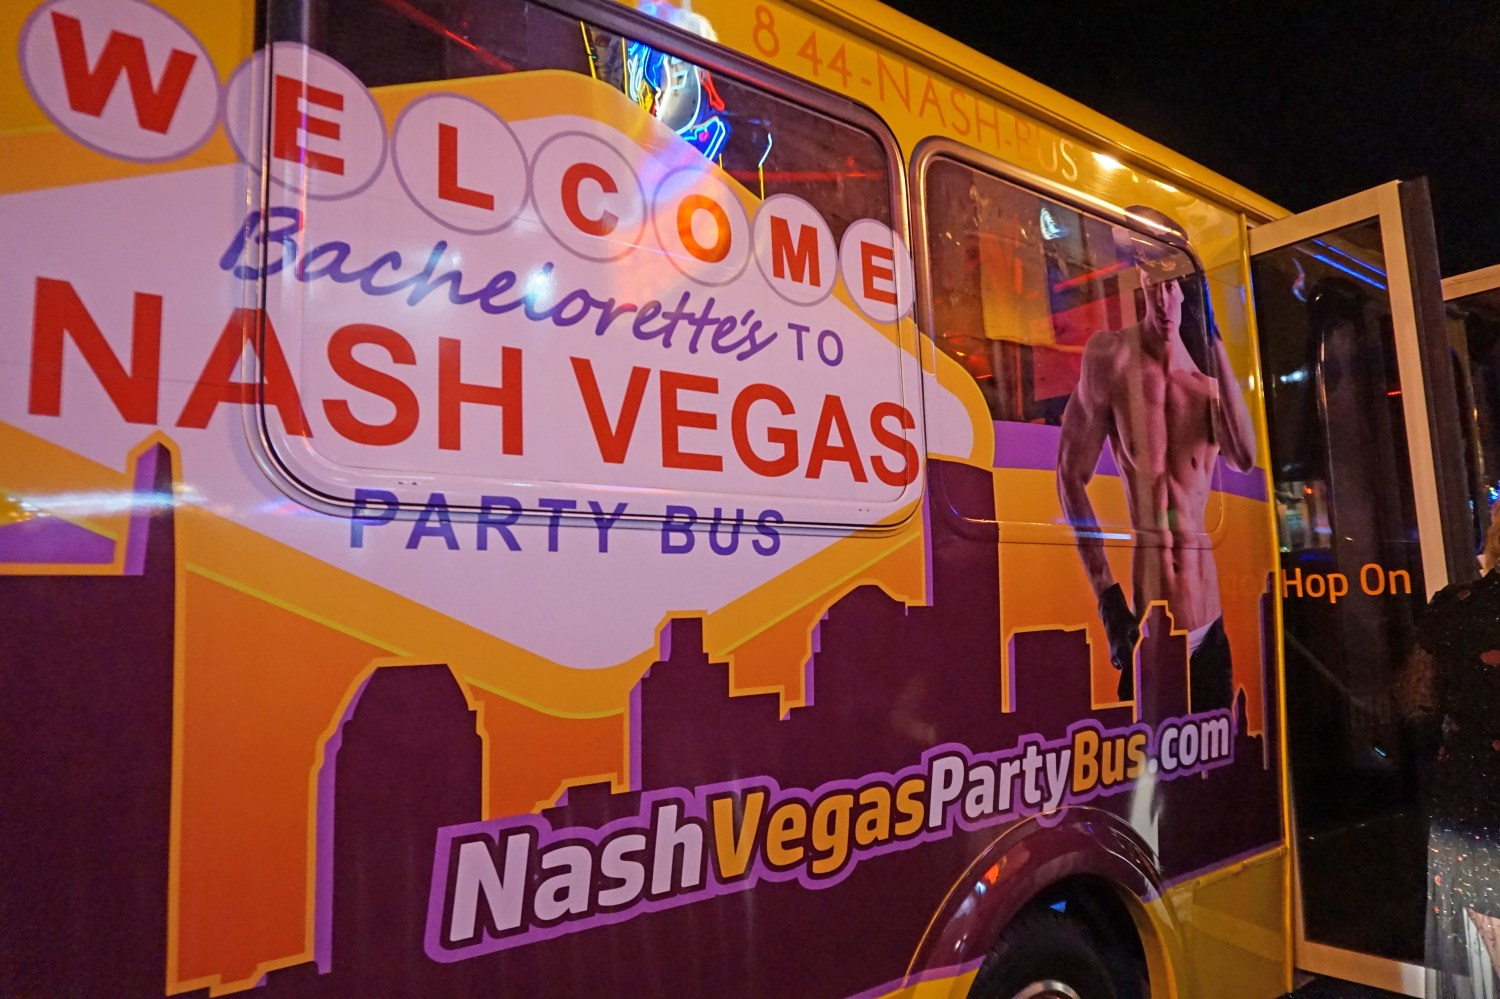 Nashville party bus for bachelorette party.